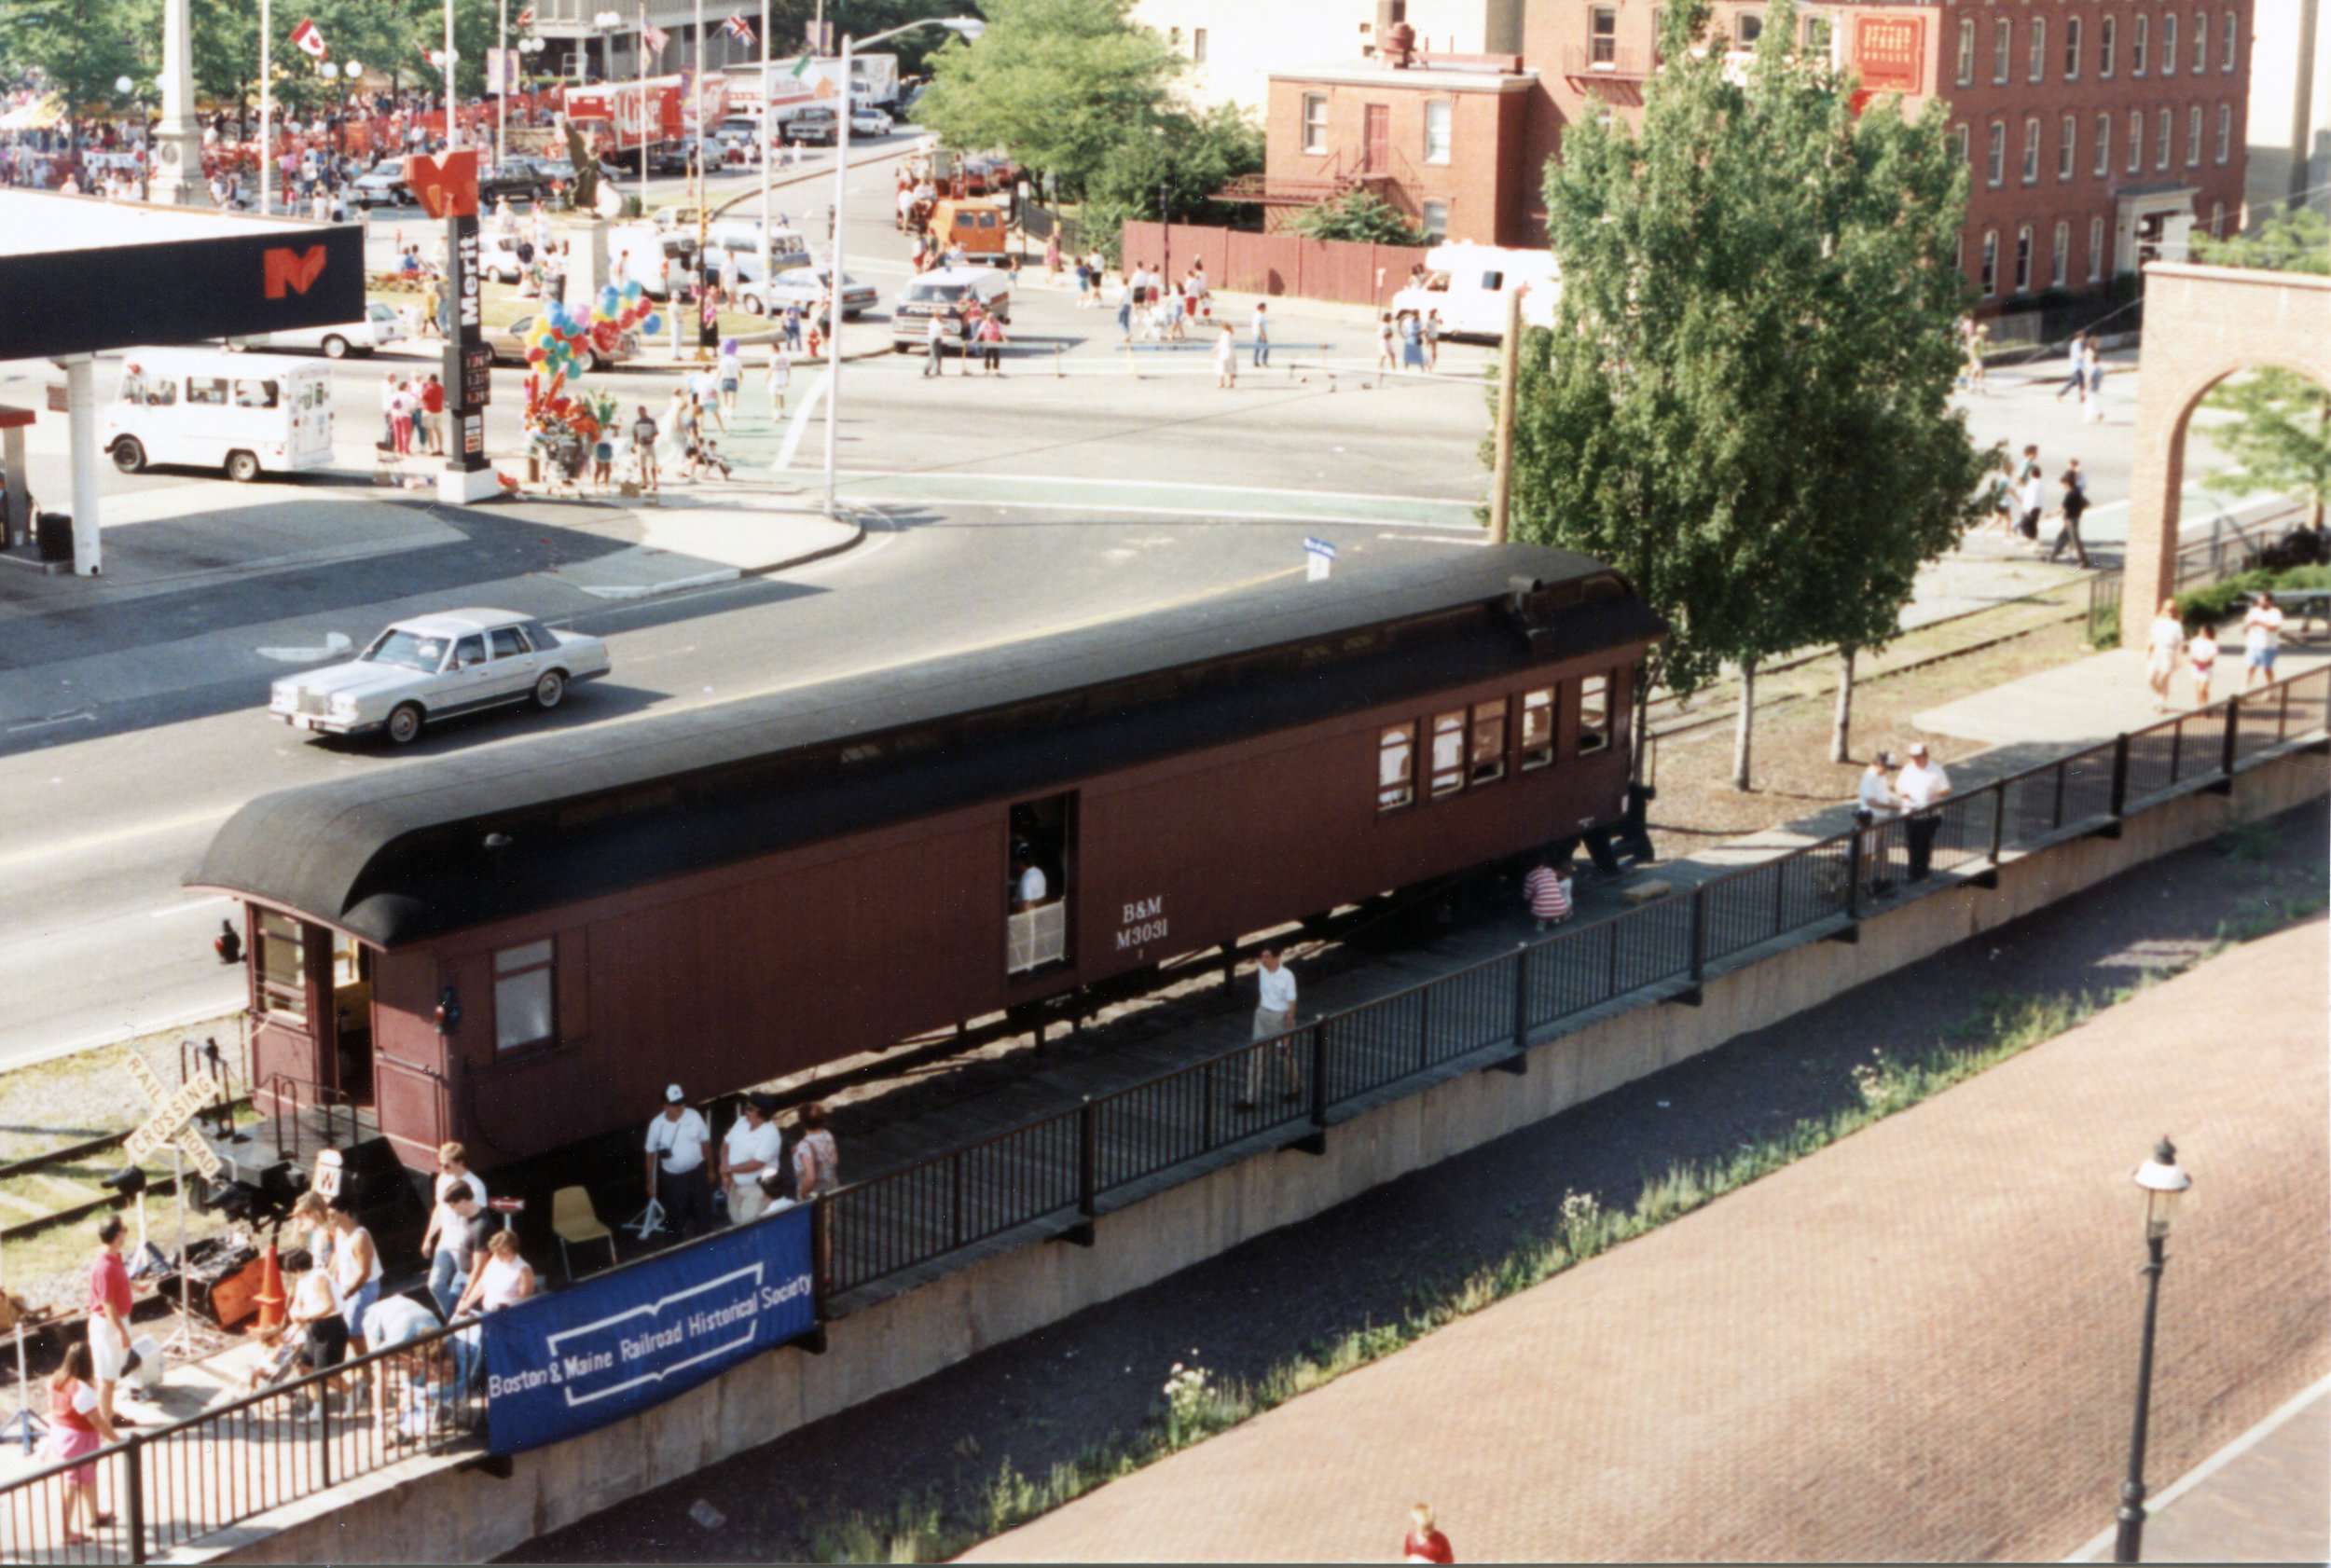 The combine shortly after opening, during the Lowell Folk Festival in 1993.